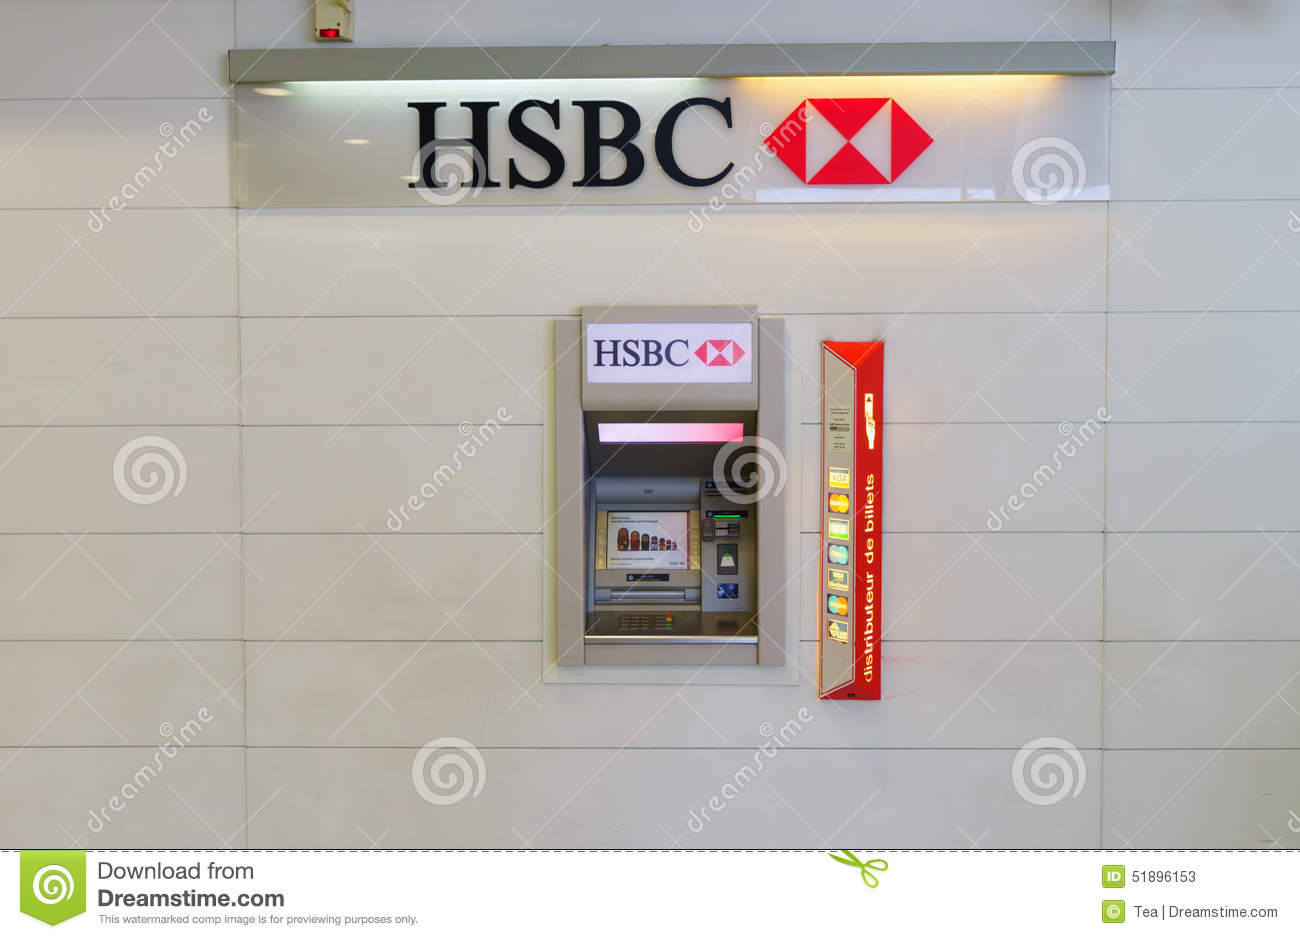 HSBC ATM editorial stock photo  Image of commerce, screen